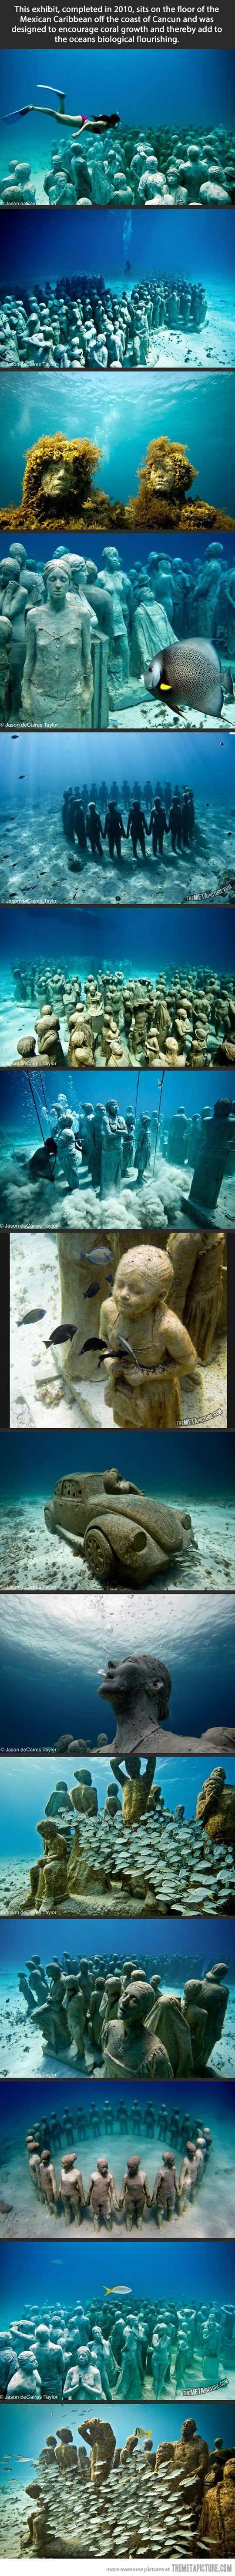 Amazing underwater museum…the unstoppable expression of the heart in art. #diving #scubadiving #underwaterfun #ArtofScubaDiving